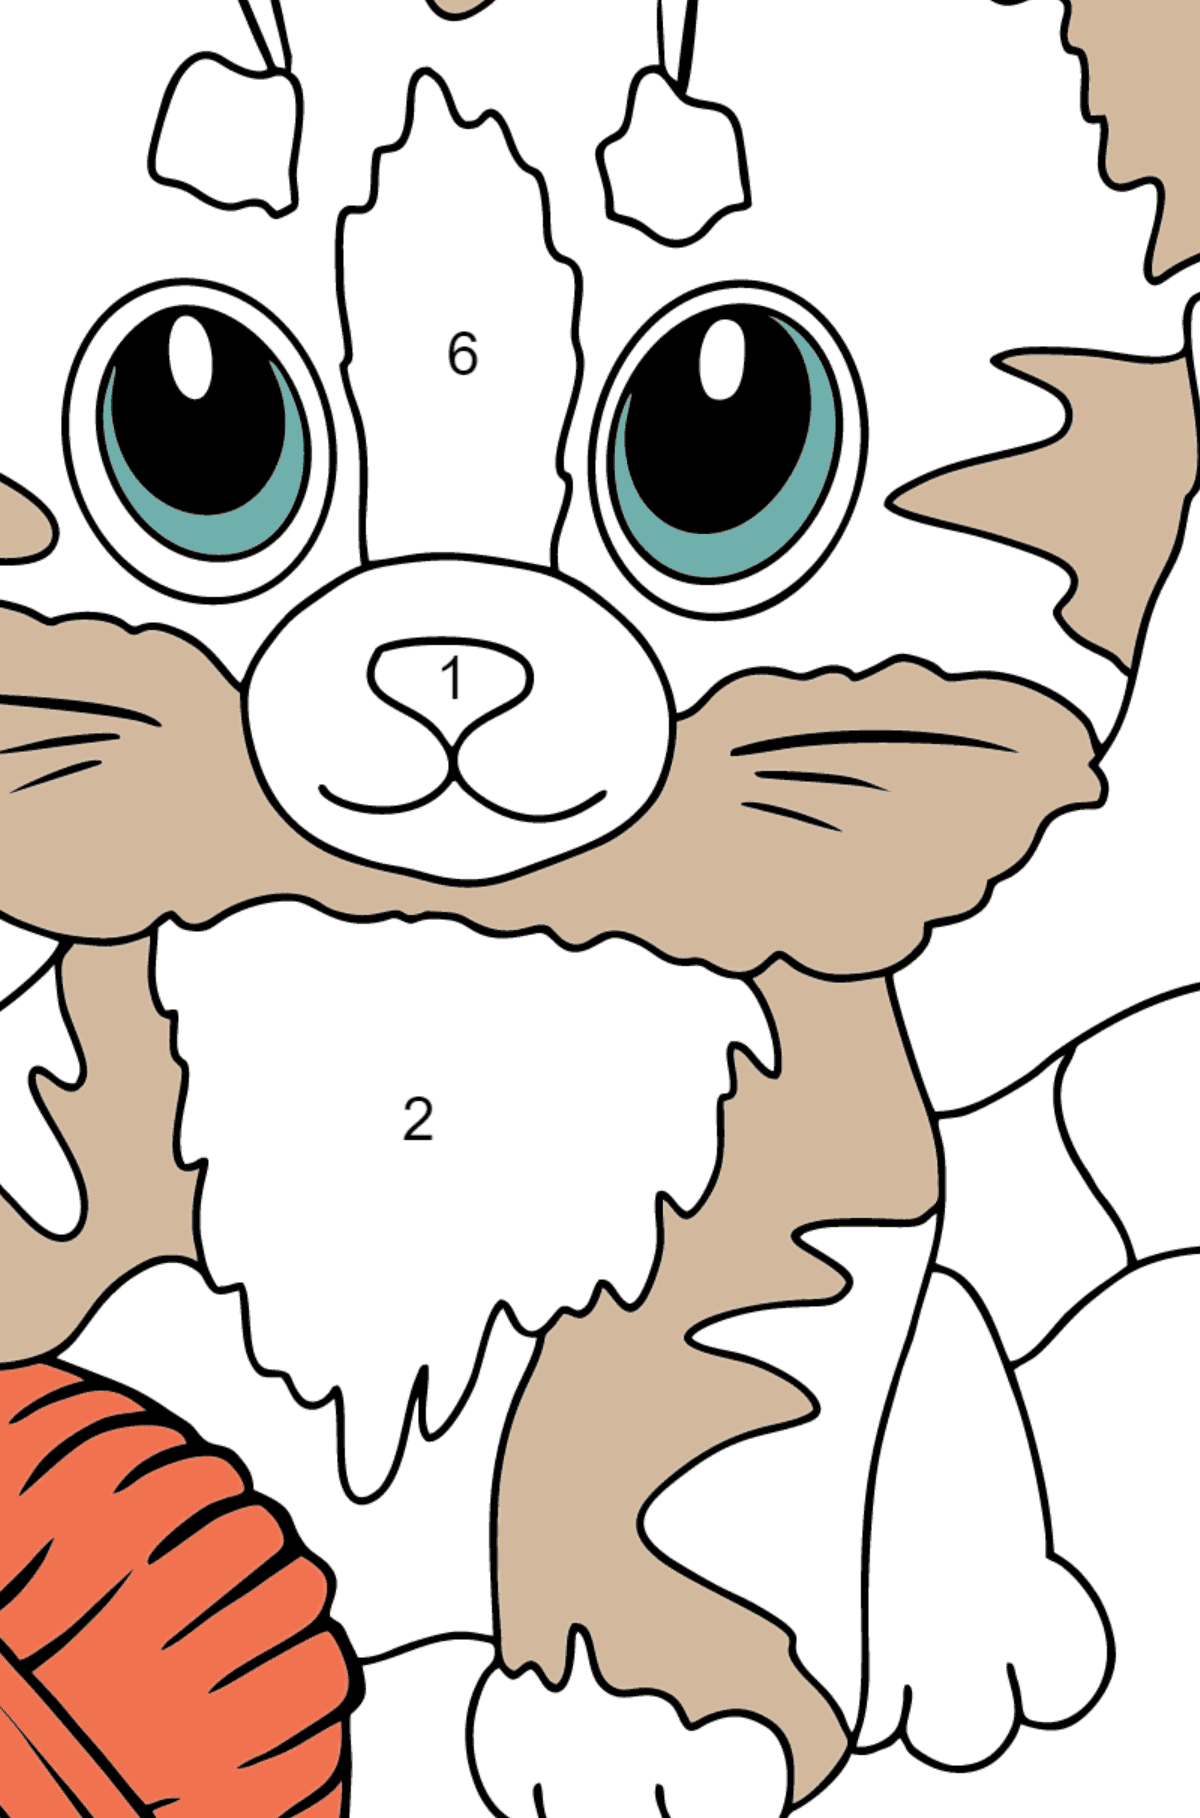 Coloring Page - a Kitten has Caught a Ball of Yarn - Coloring by Numbers for Children